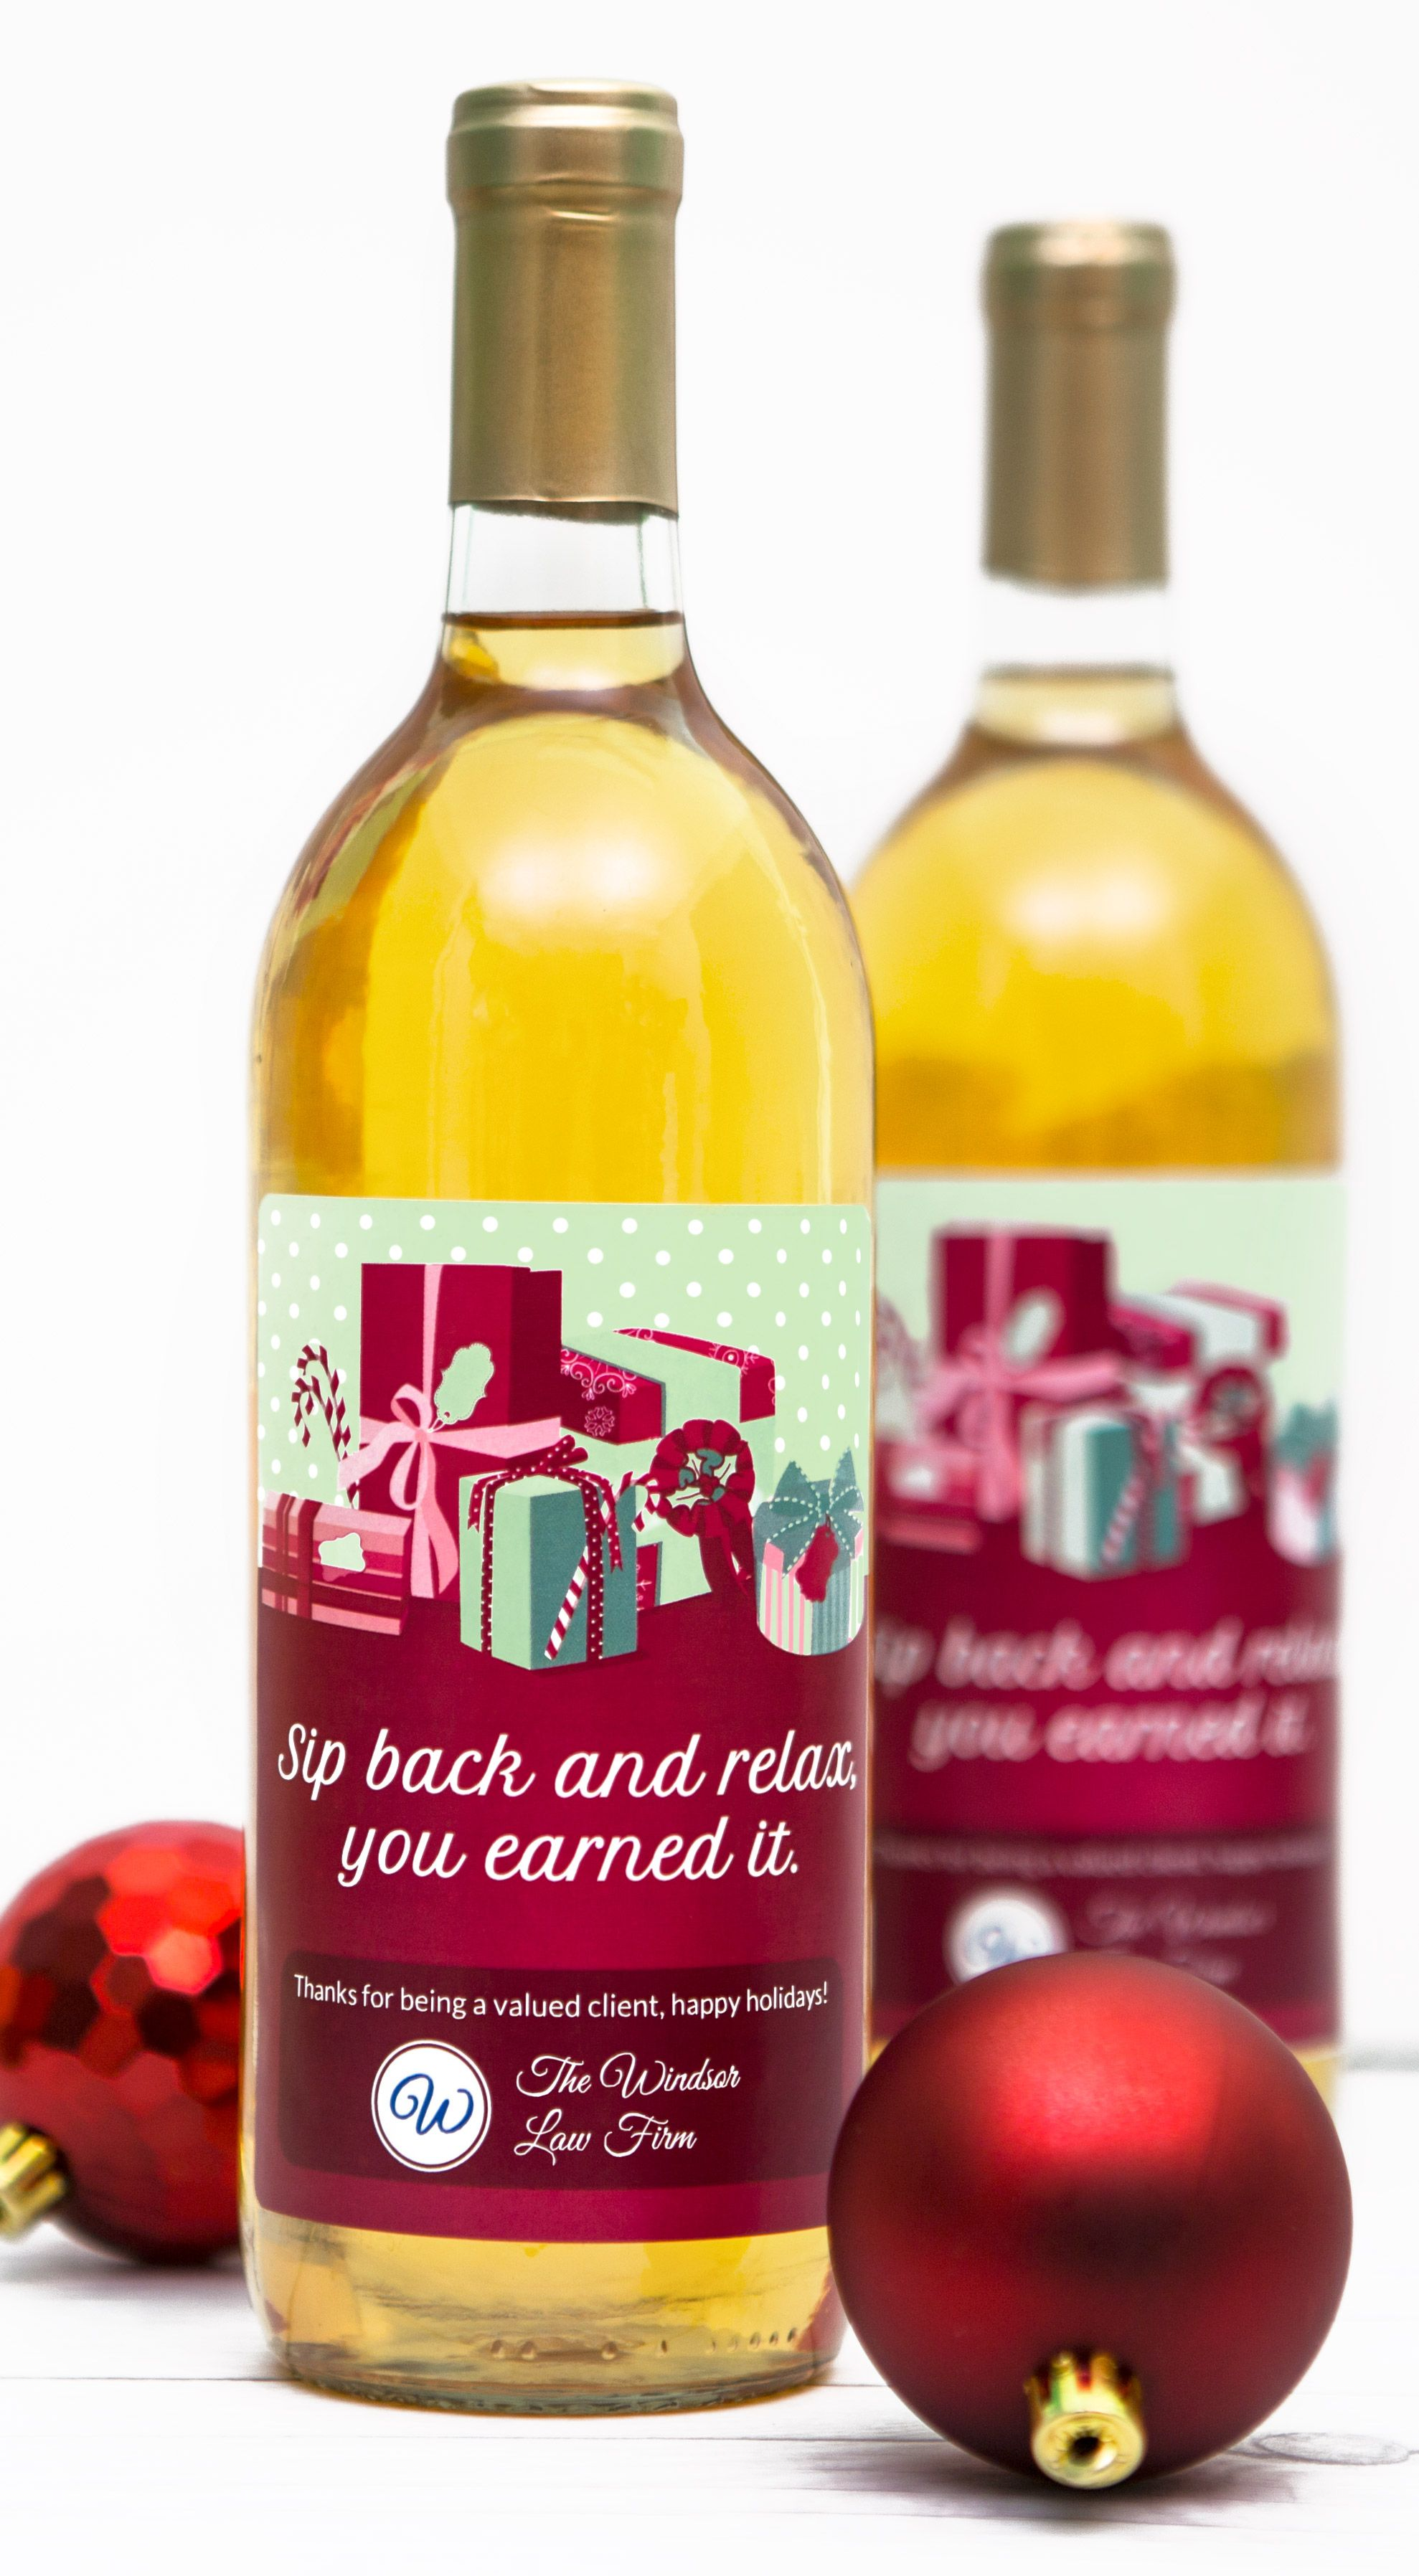 Give Your Clients A Gift They Ll Love This Holiday Season A Bottle Of Wine With A Custom Branded Label Wine Bottle Diy Wine Bottle Labels Wine Bottle Labels